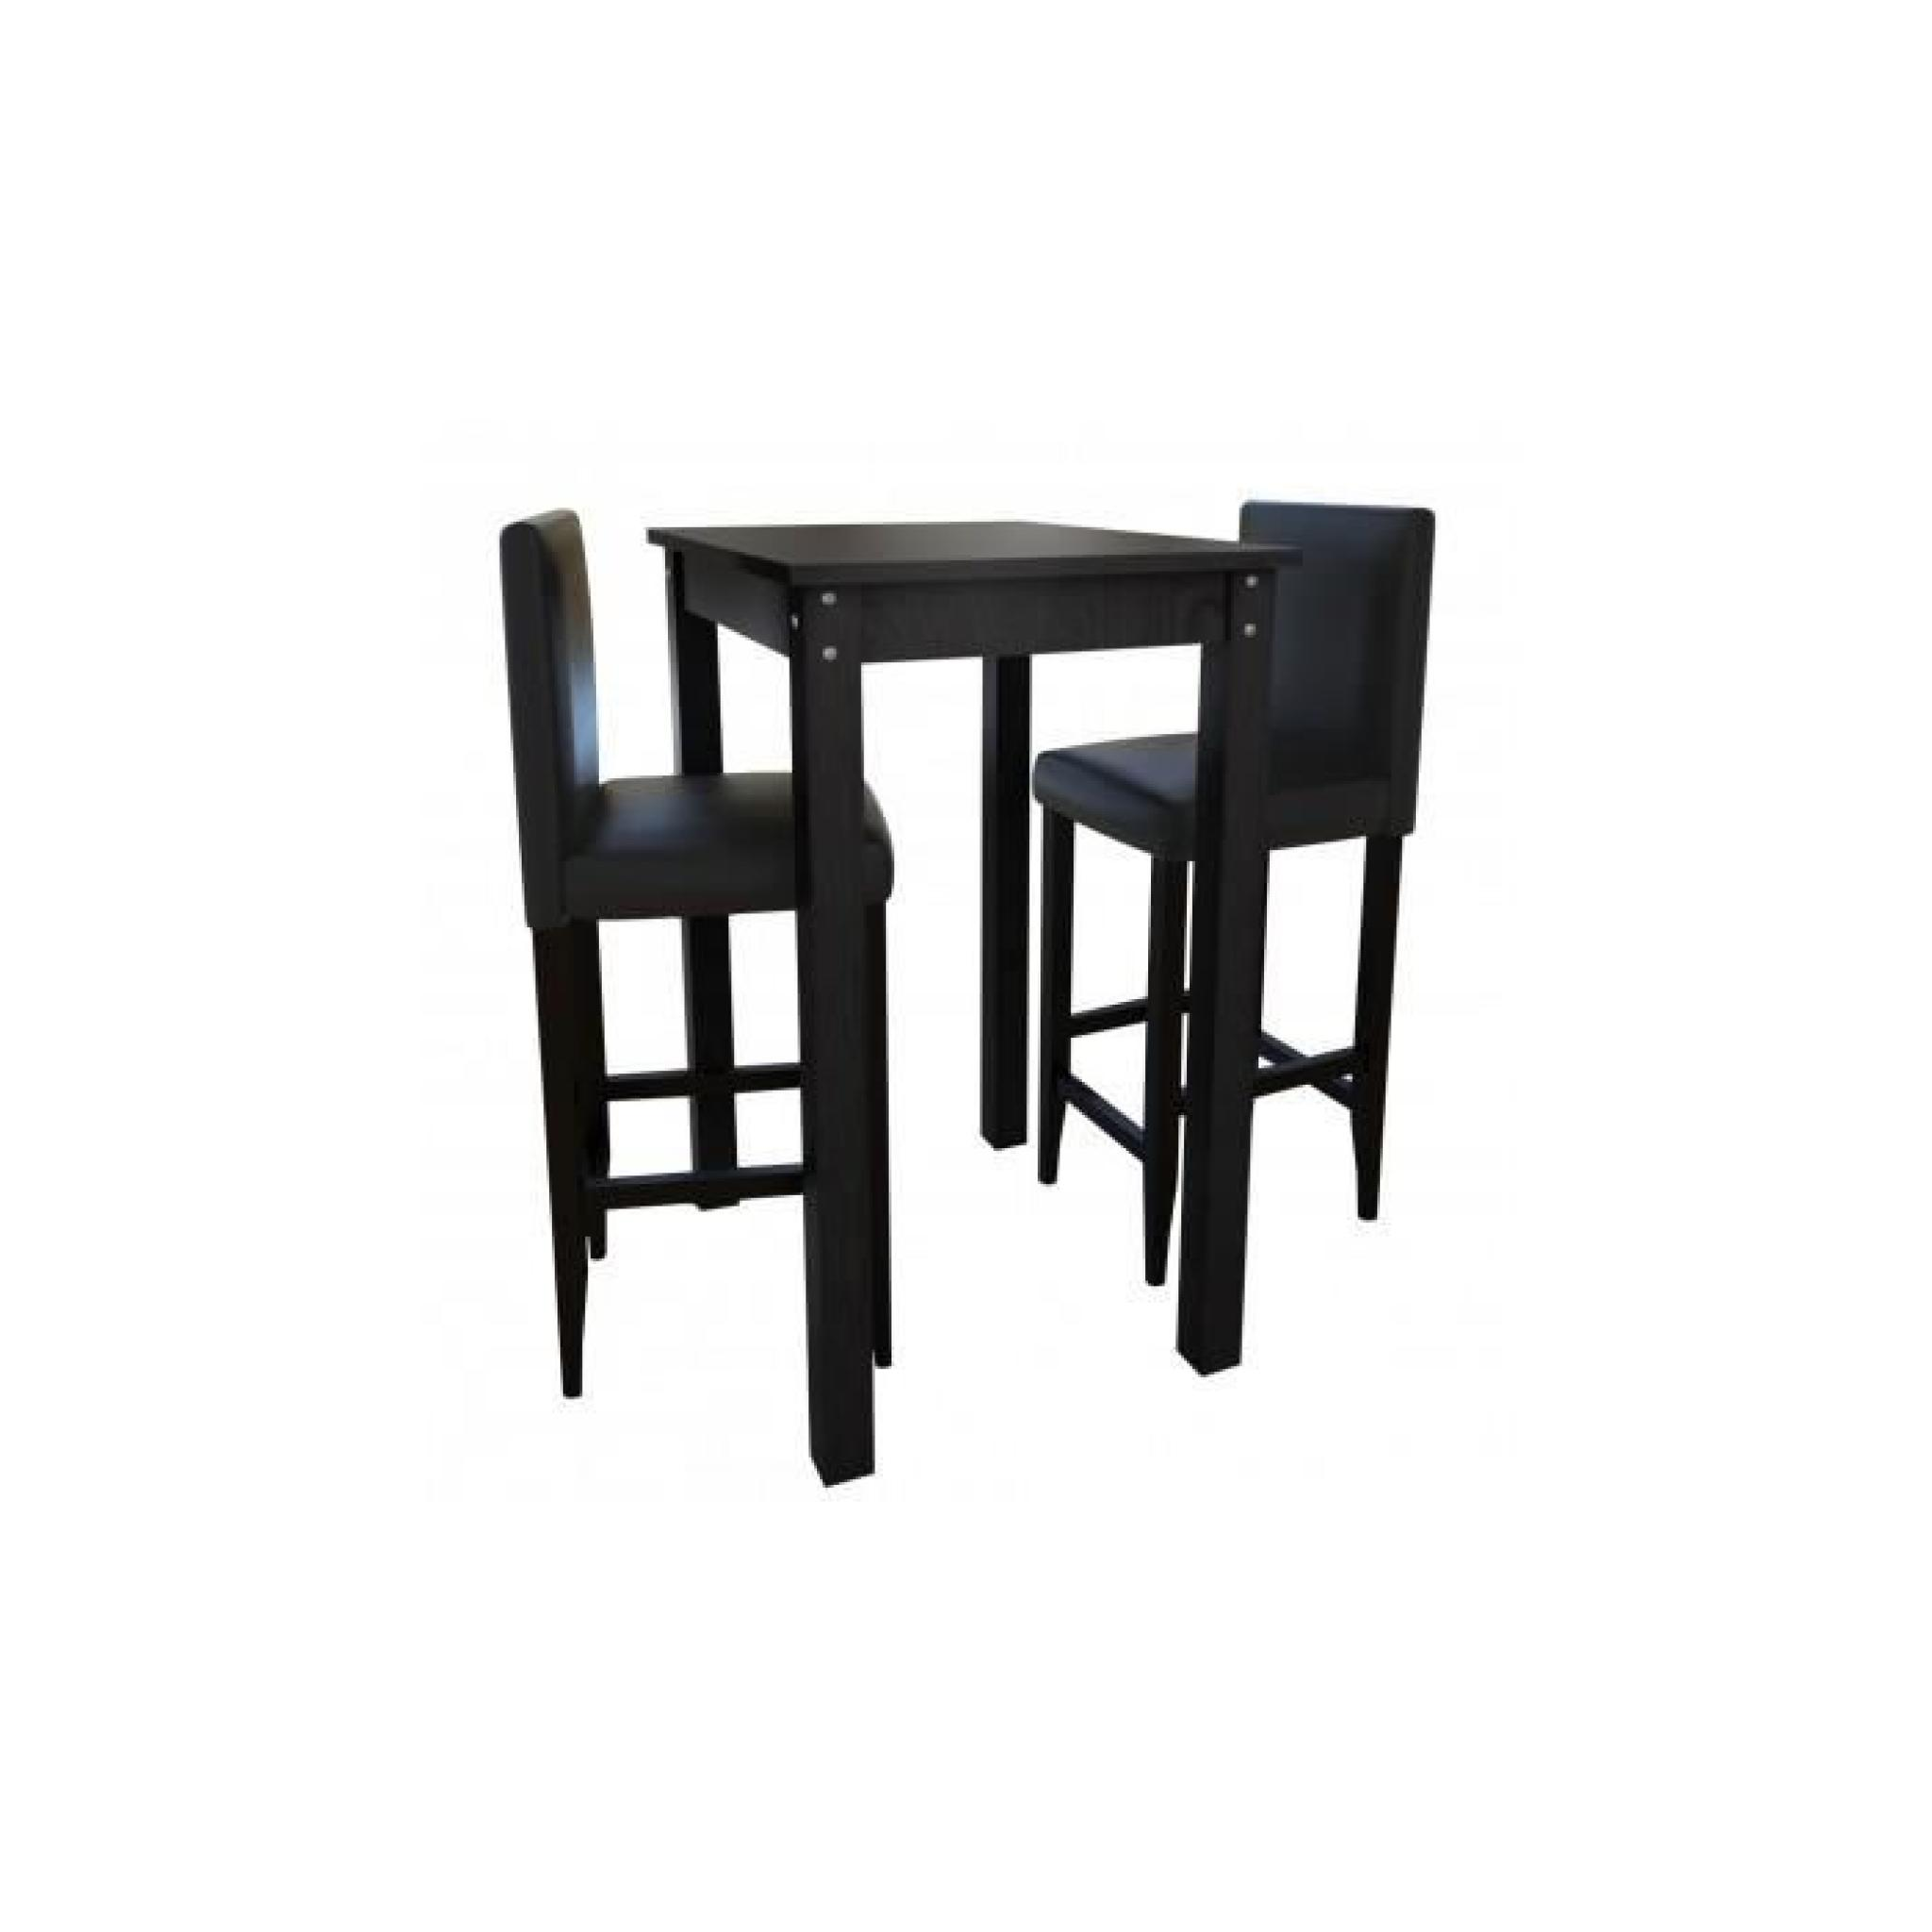 set de 1 table et 2 tabourets noir achat vente table salle a manger pas cher couleur et. Black Bedroom Furniture Sets. Home Design Ideas